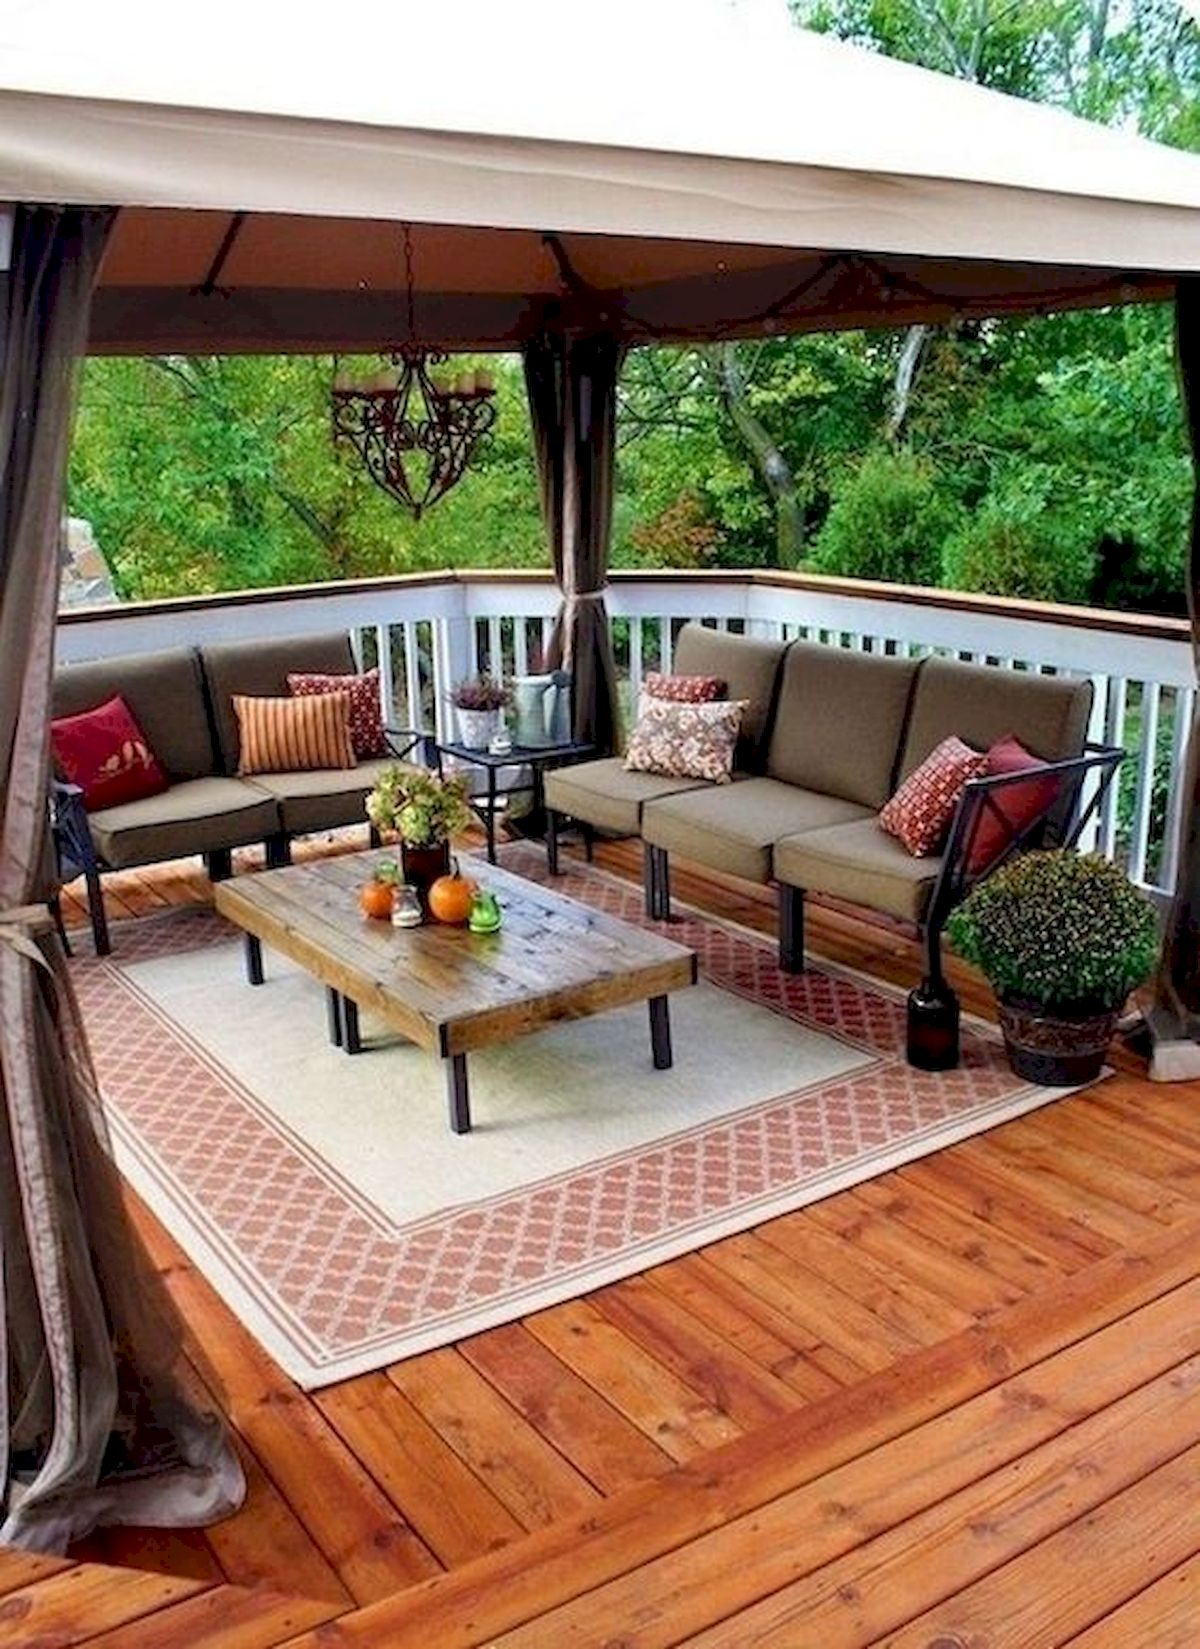 50 Fantastic Backyard Patio And Decking Design Ideas (3)